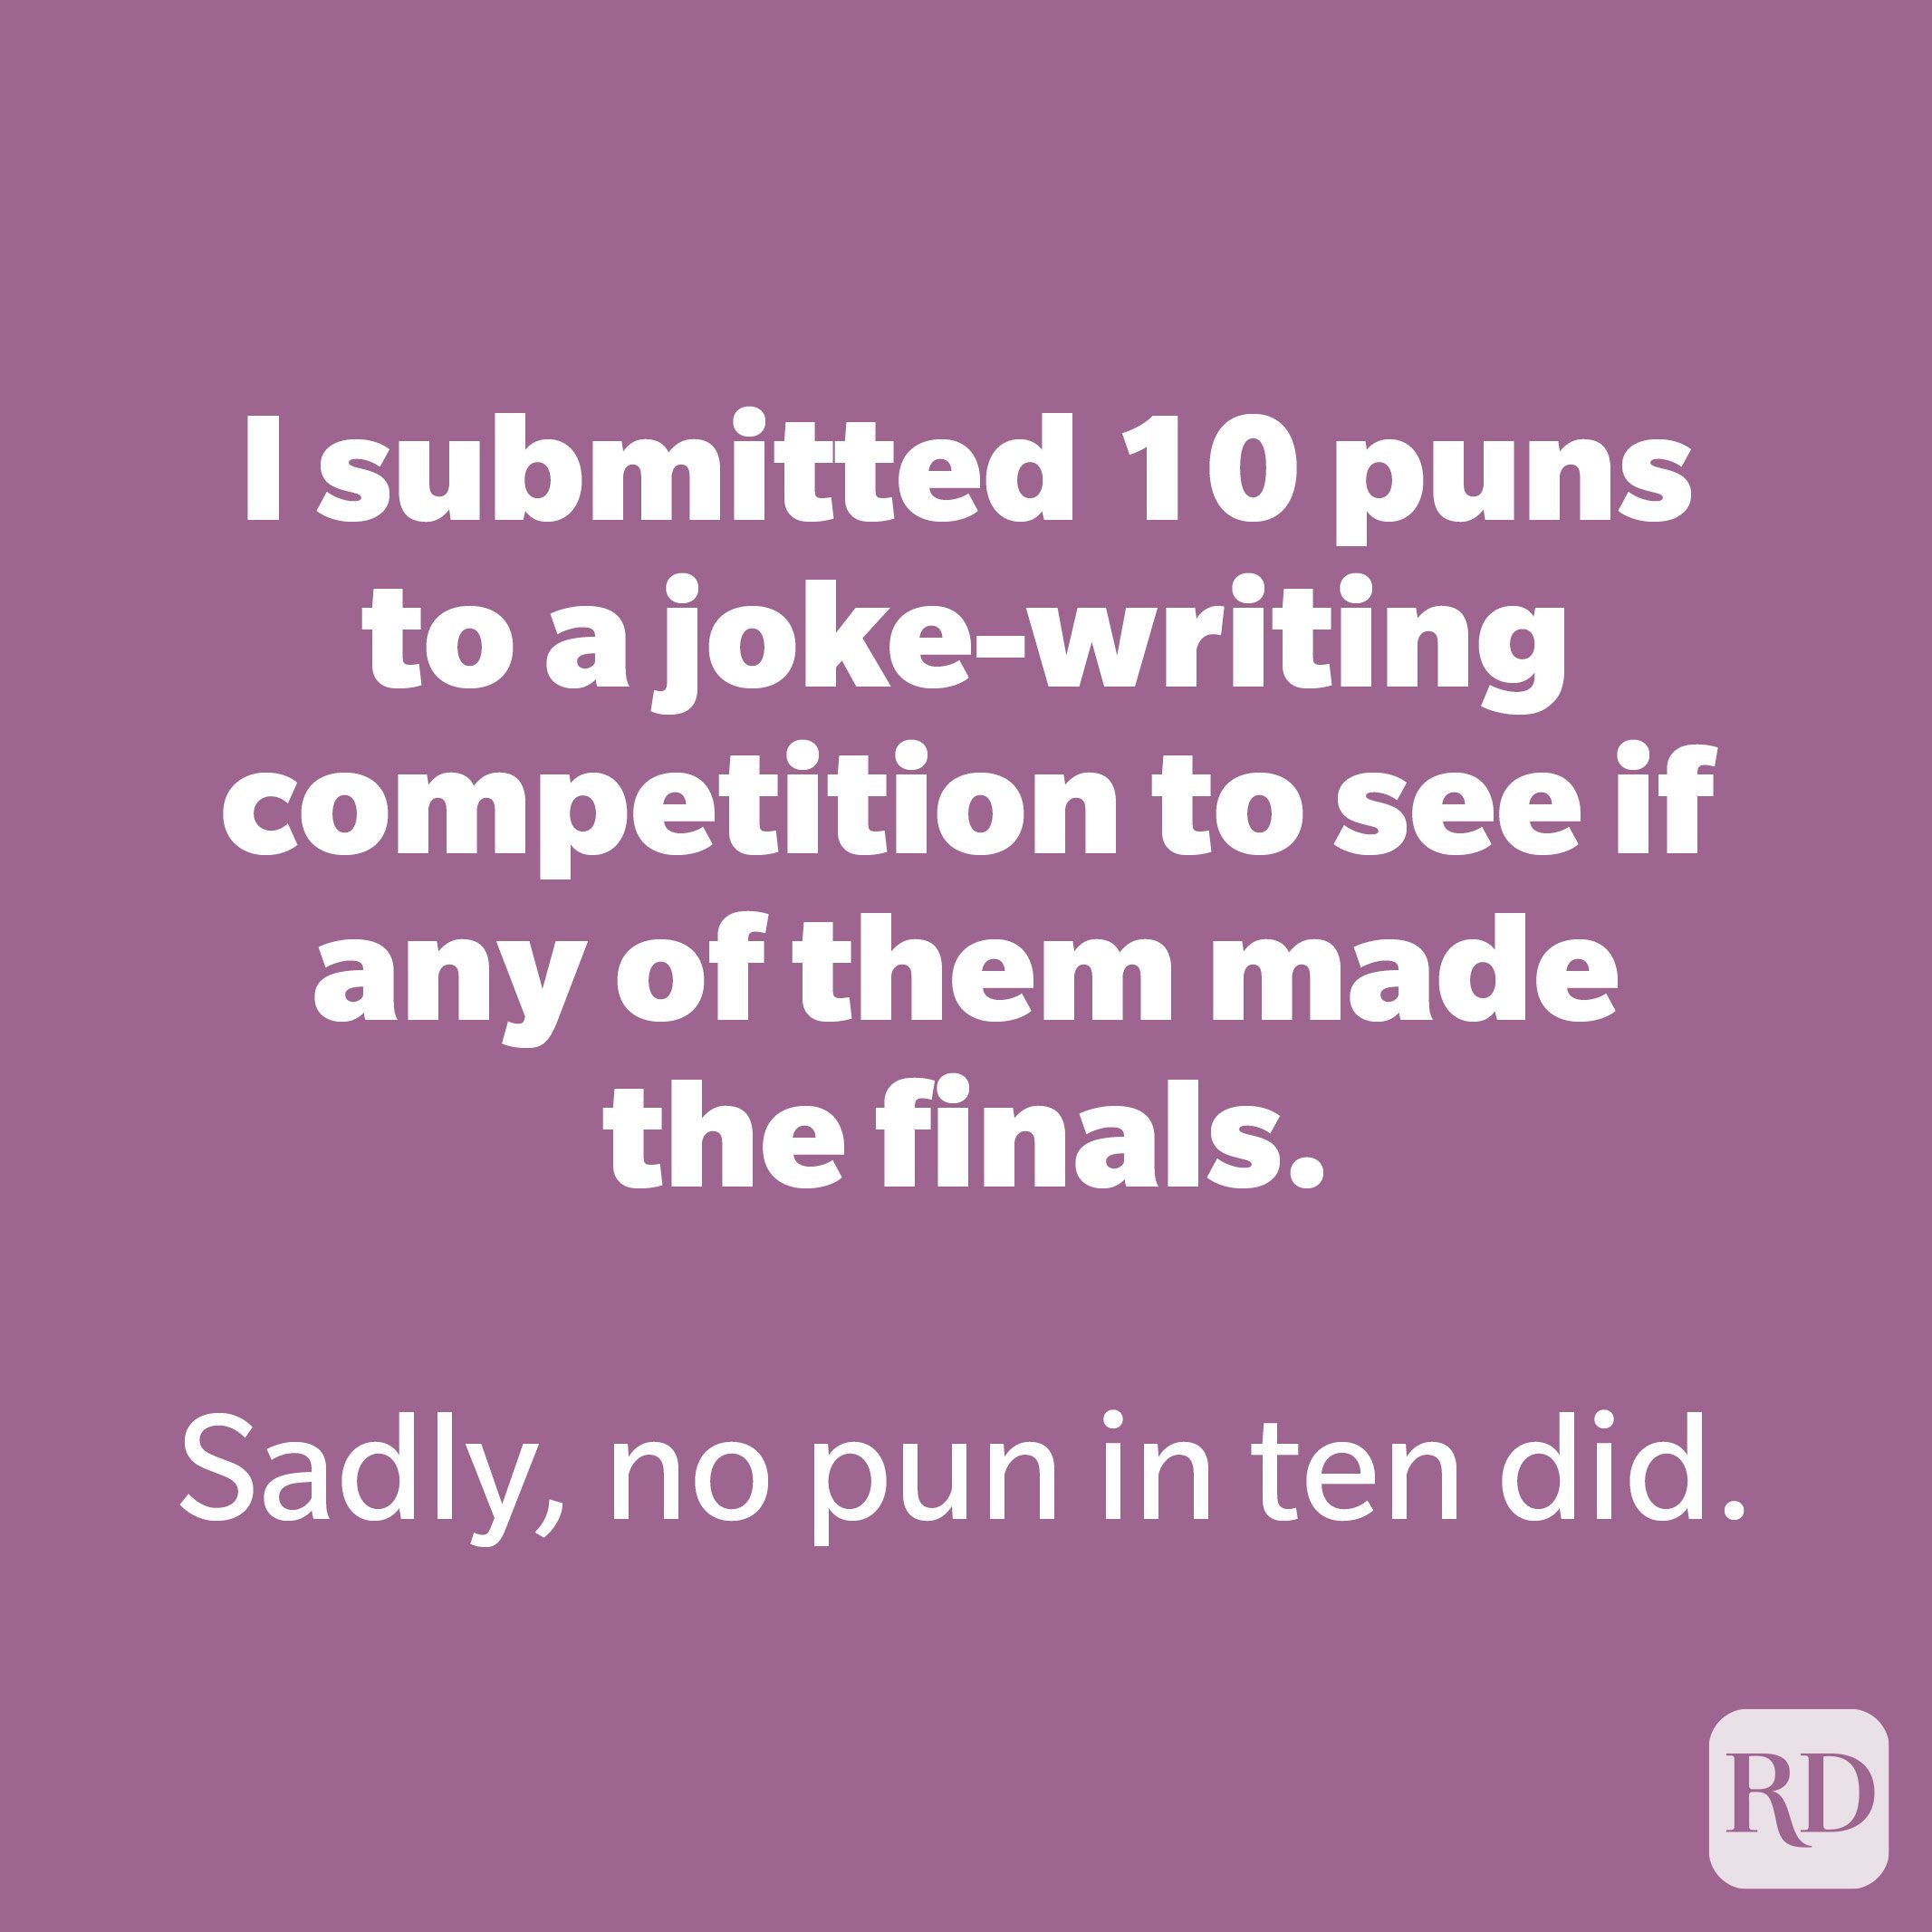 I submitted 10 puns to a joke-writing competition to see if any of them made the finals.